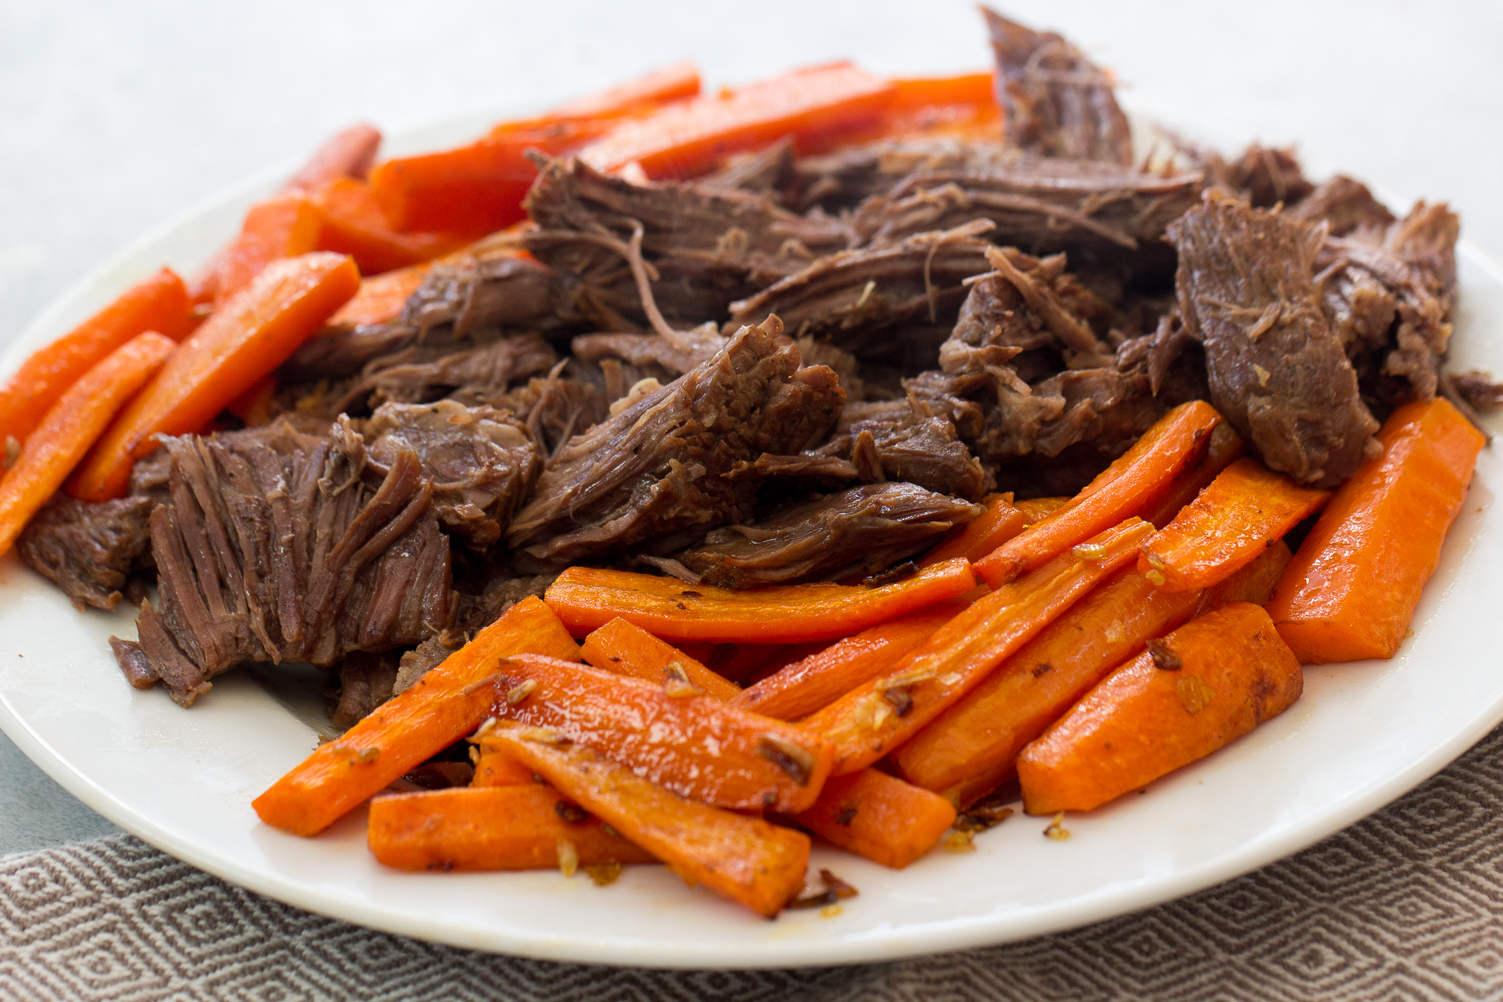 Instant Pot Italian Beef Roast on plate shredded with carrots